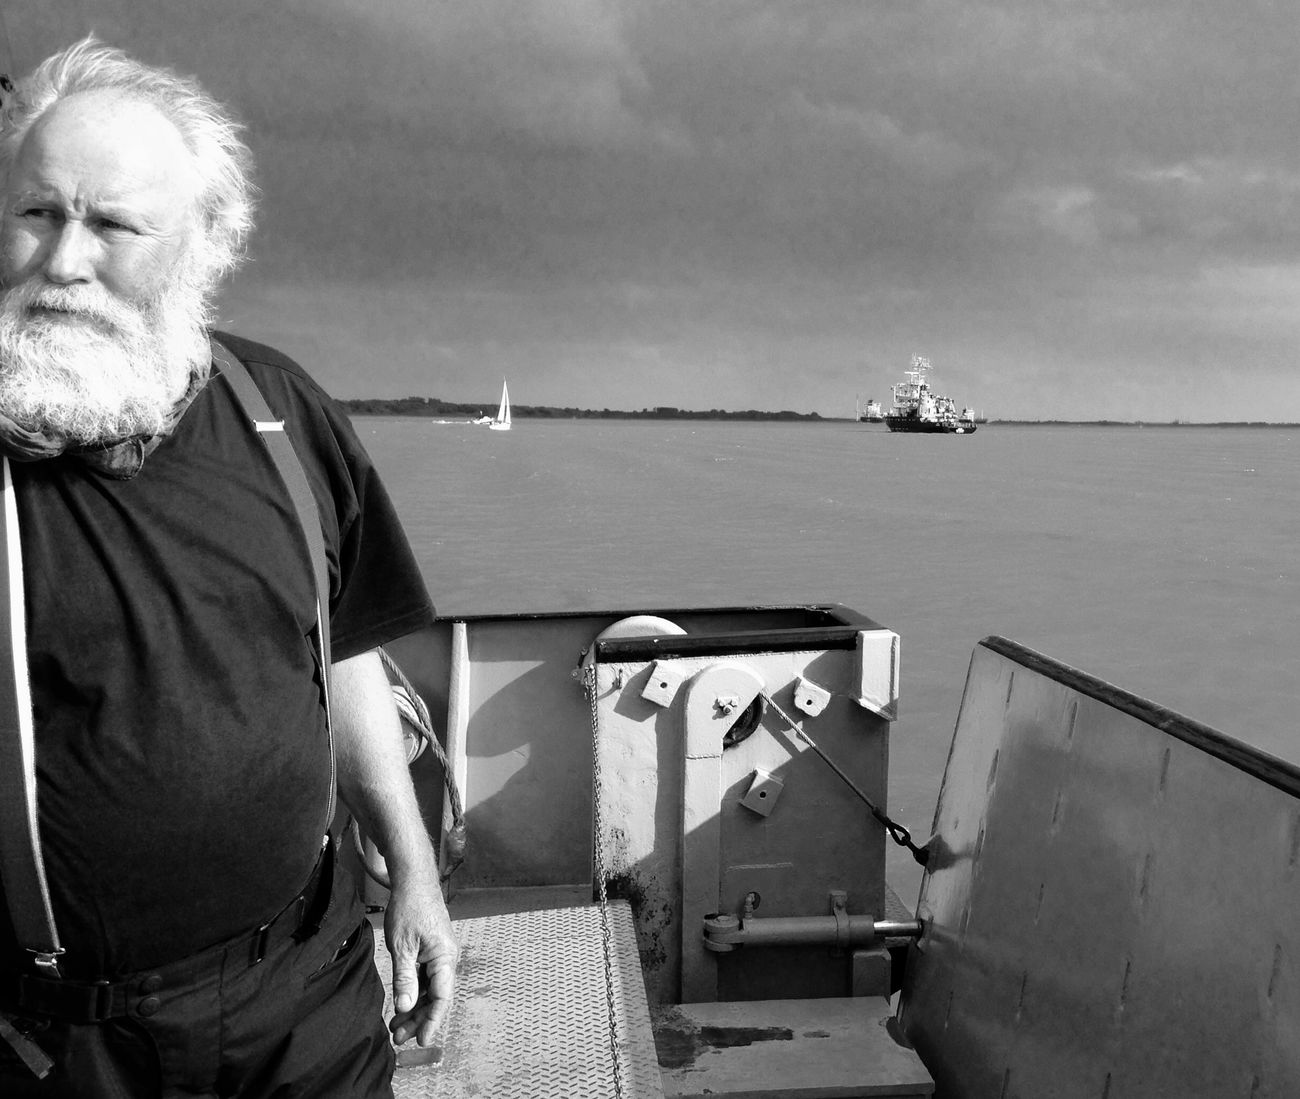 Oldman Blackandwhite Light And Shadow Shades Of Grey Taking Photos Traveling Sea And Sky Menswear Men Beard